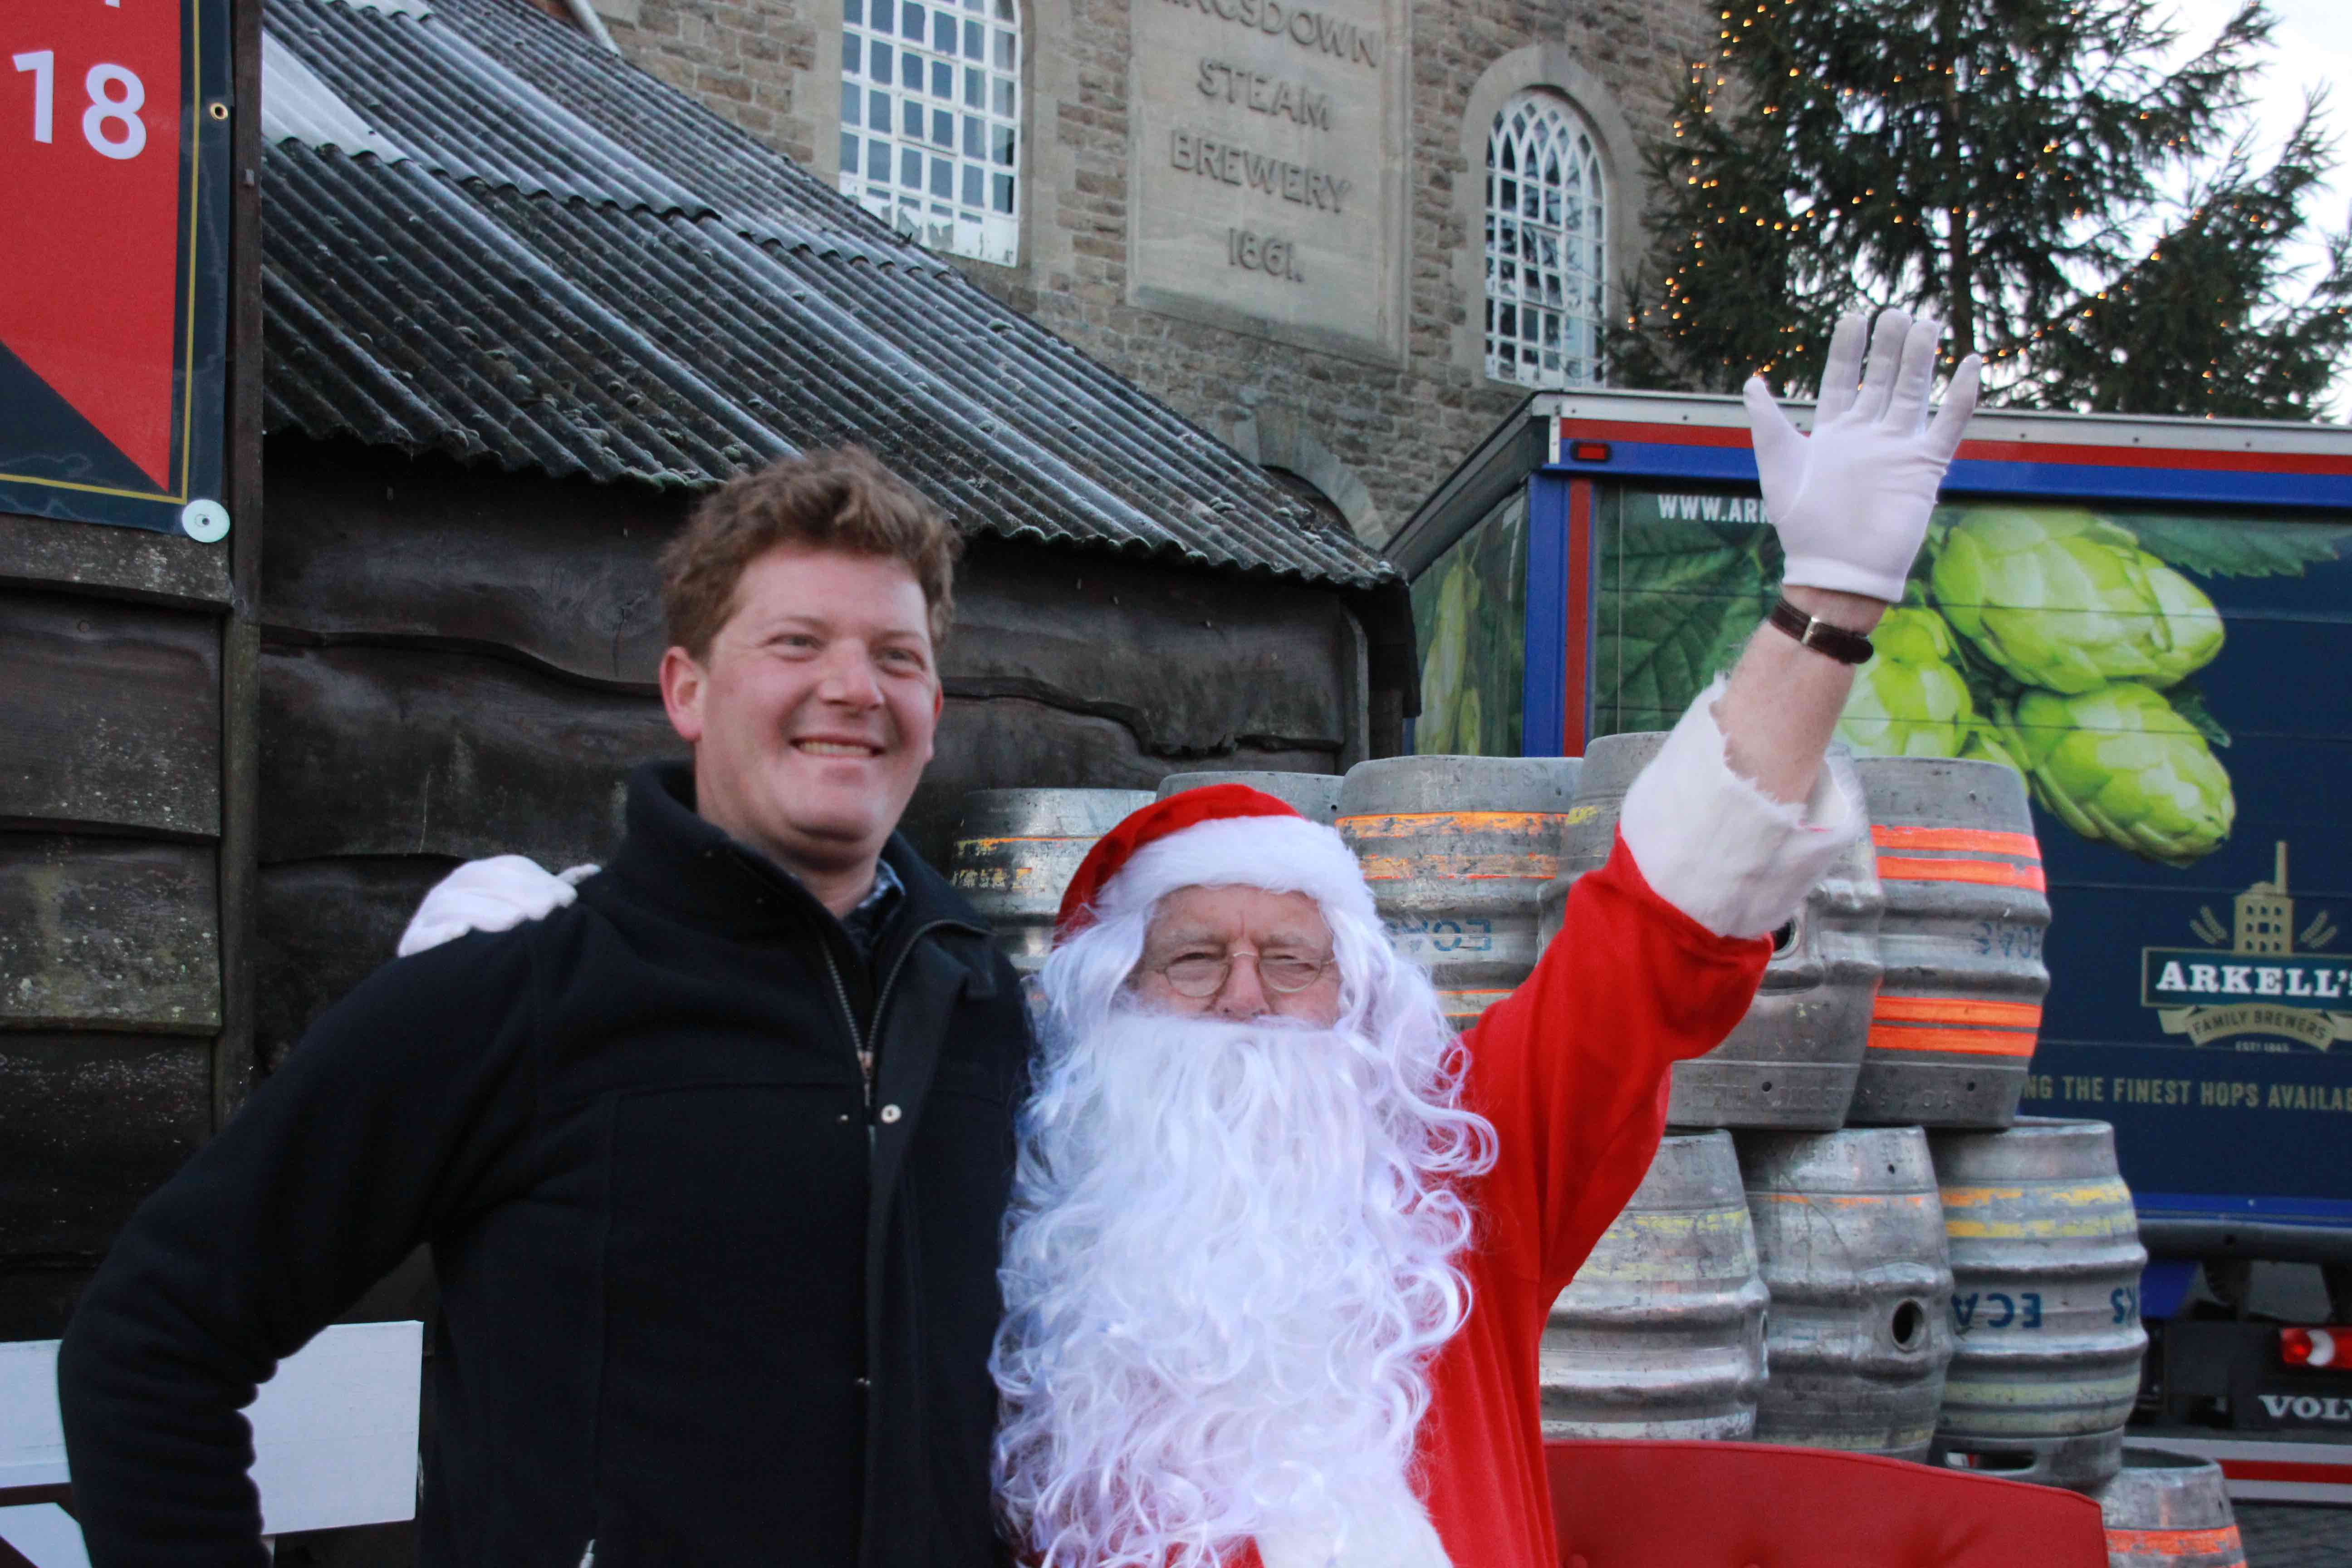 Alex Arkell with Father Christmas LR.jpg